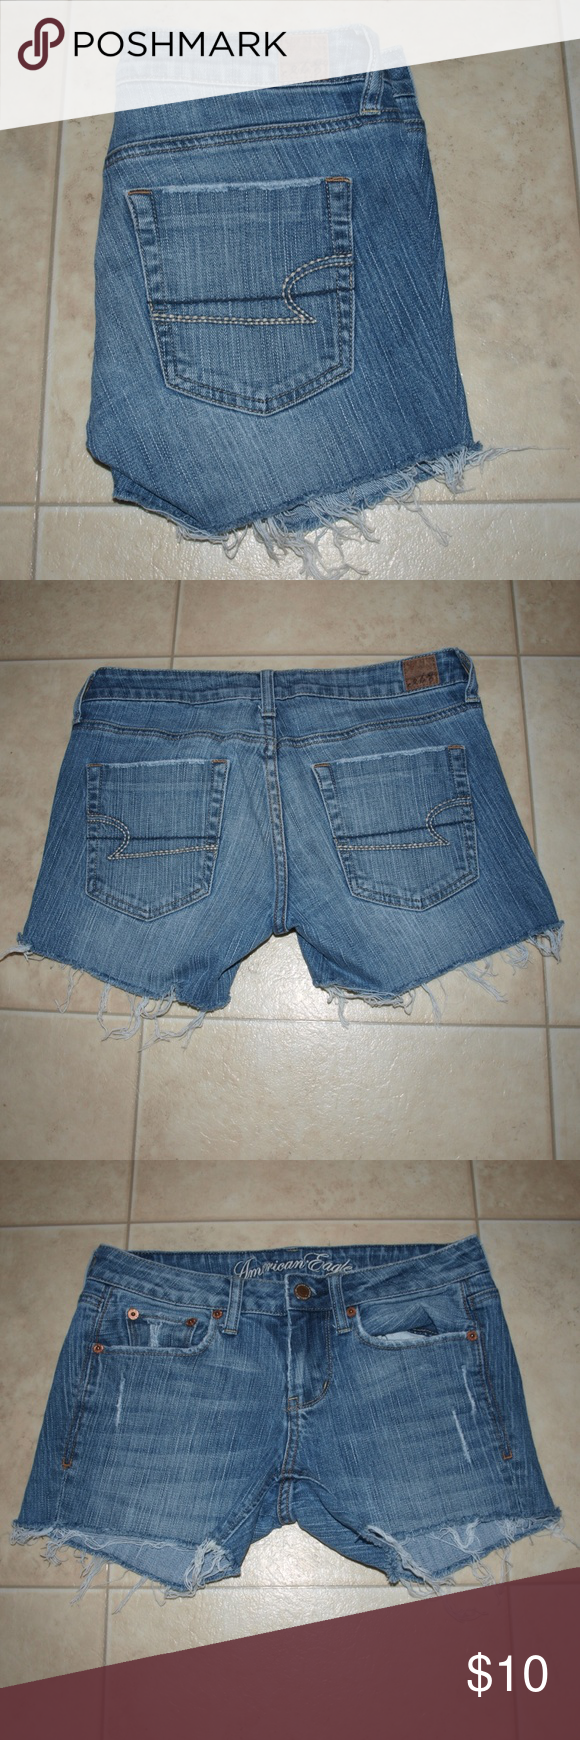 $6 AEO cutoff denim shorts Cutoff shorts! Great for summer! American Eagle Outfitters Jeans